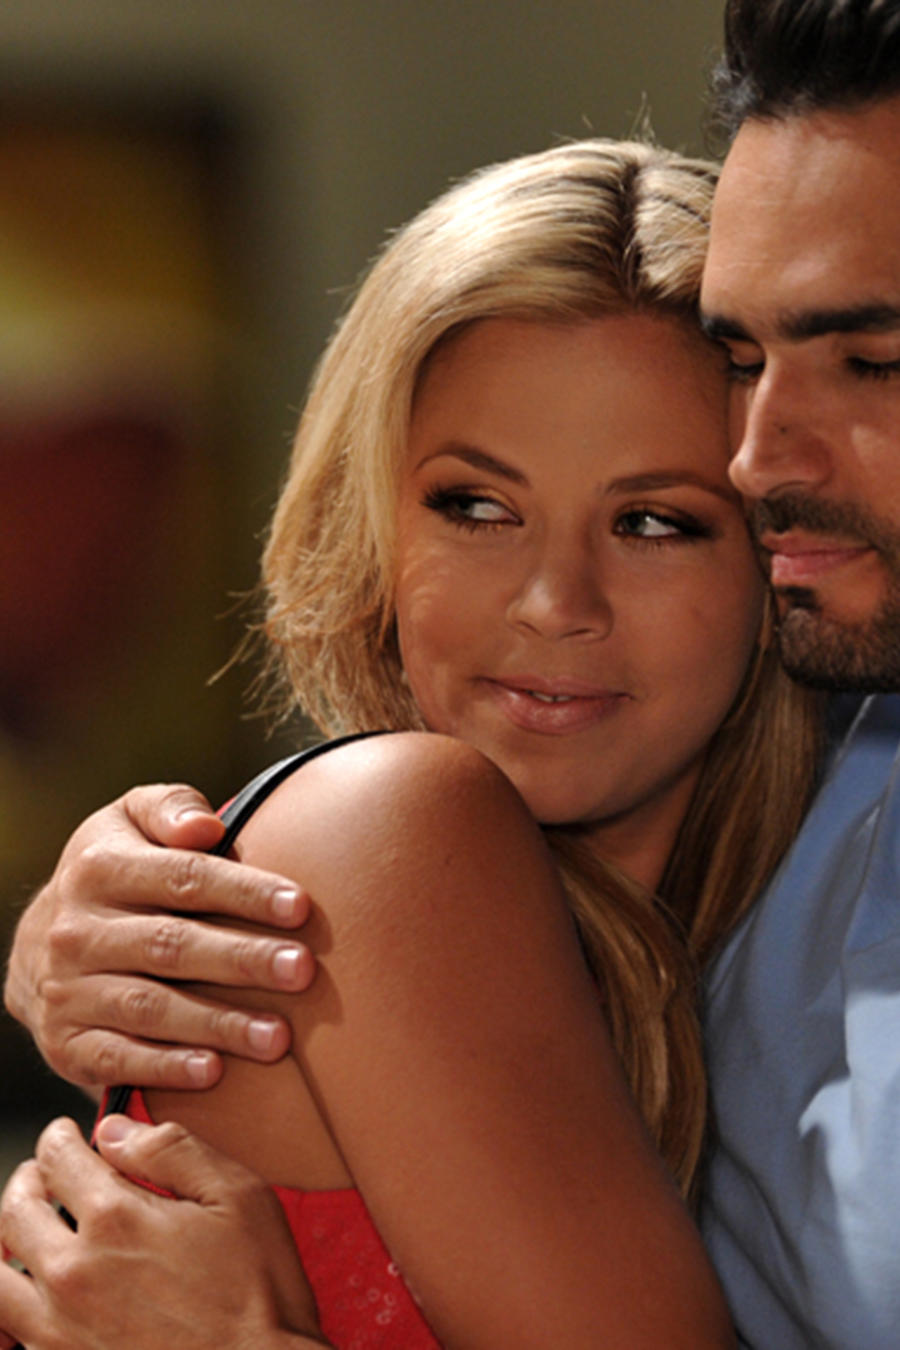 Sammy y Willy-Ximena Duque y Fabián Ríos